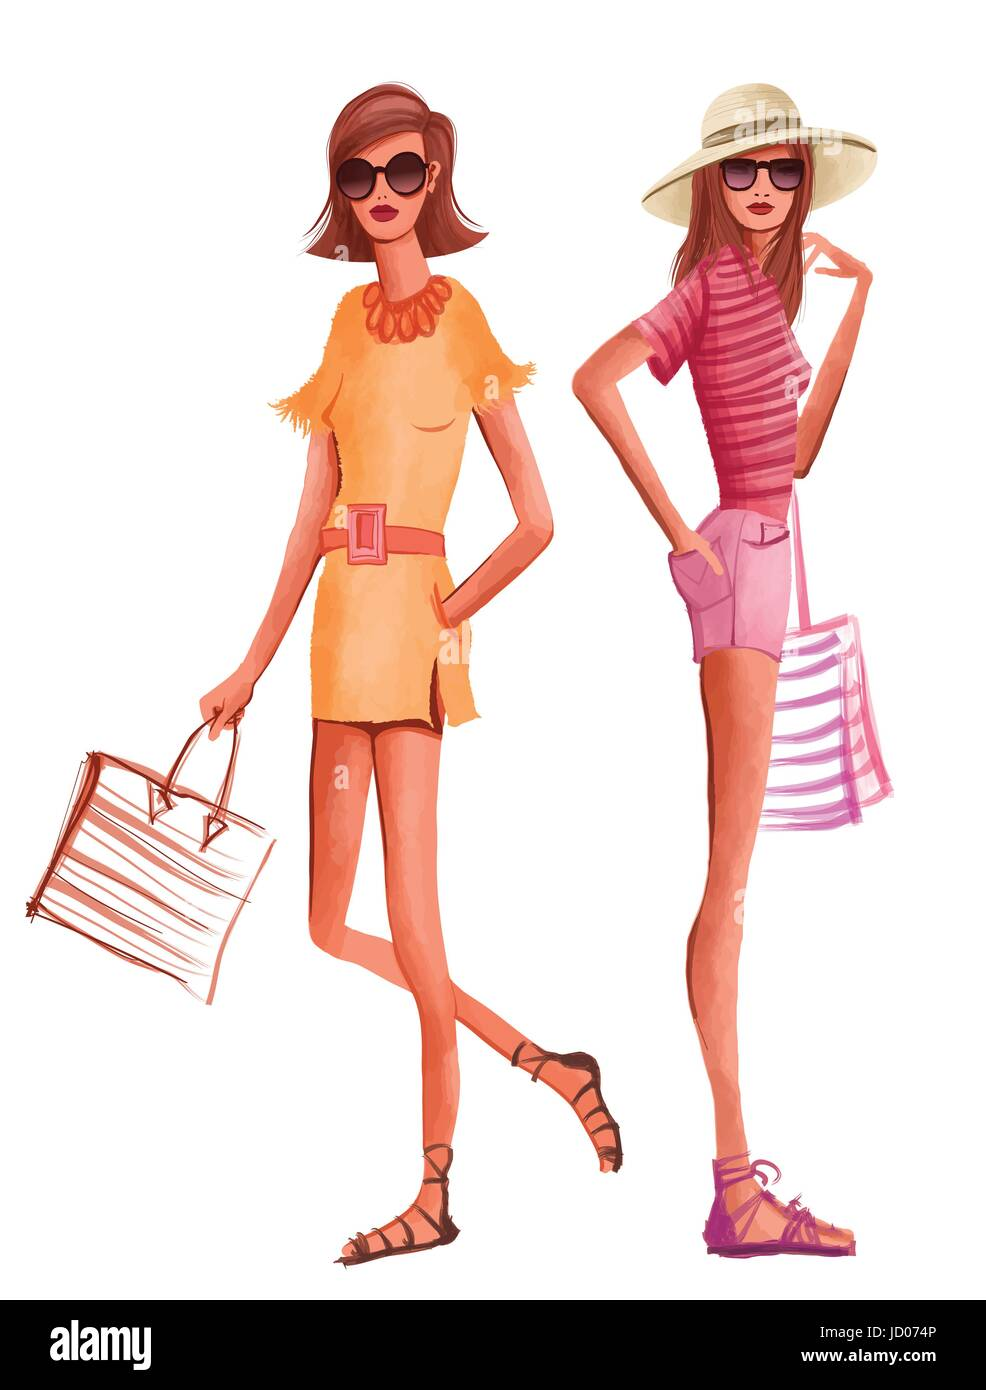 2e809d39200 Fashion women in summer dress ready for the beach - vector illustration